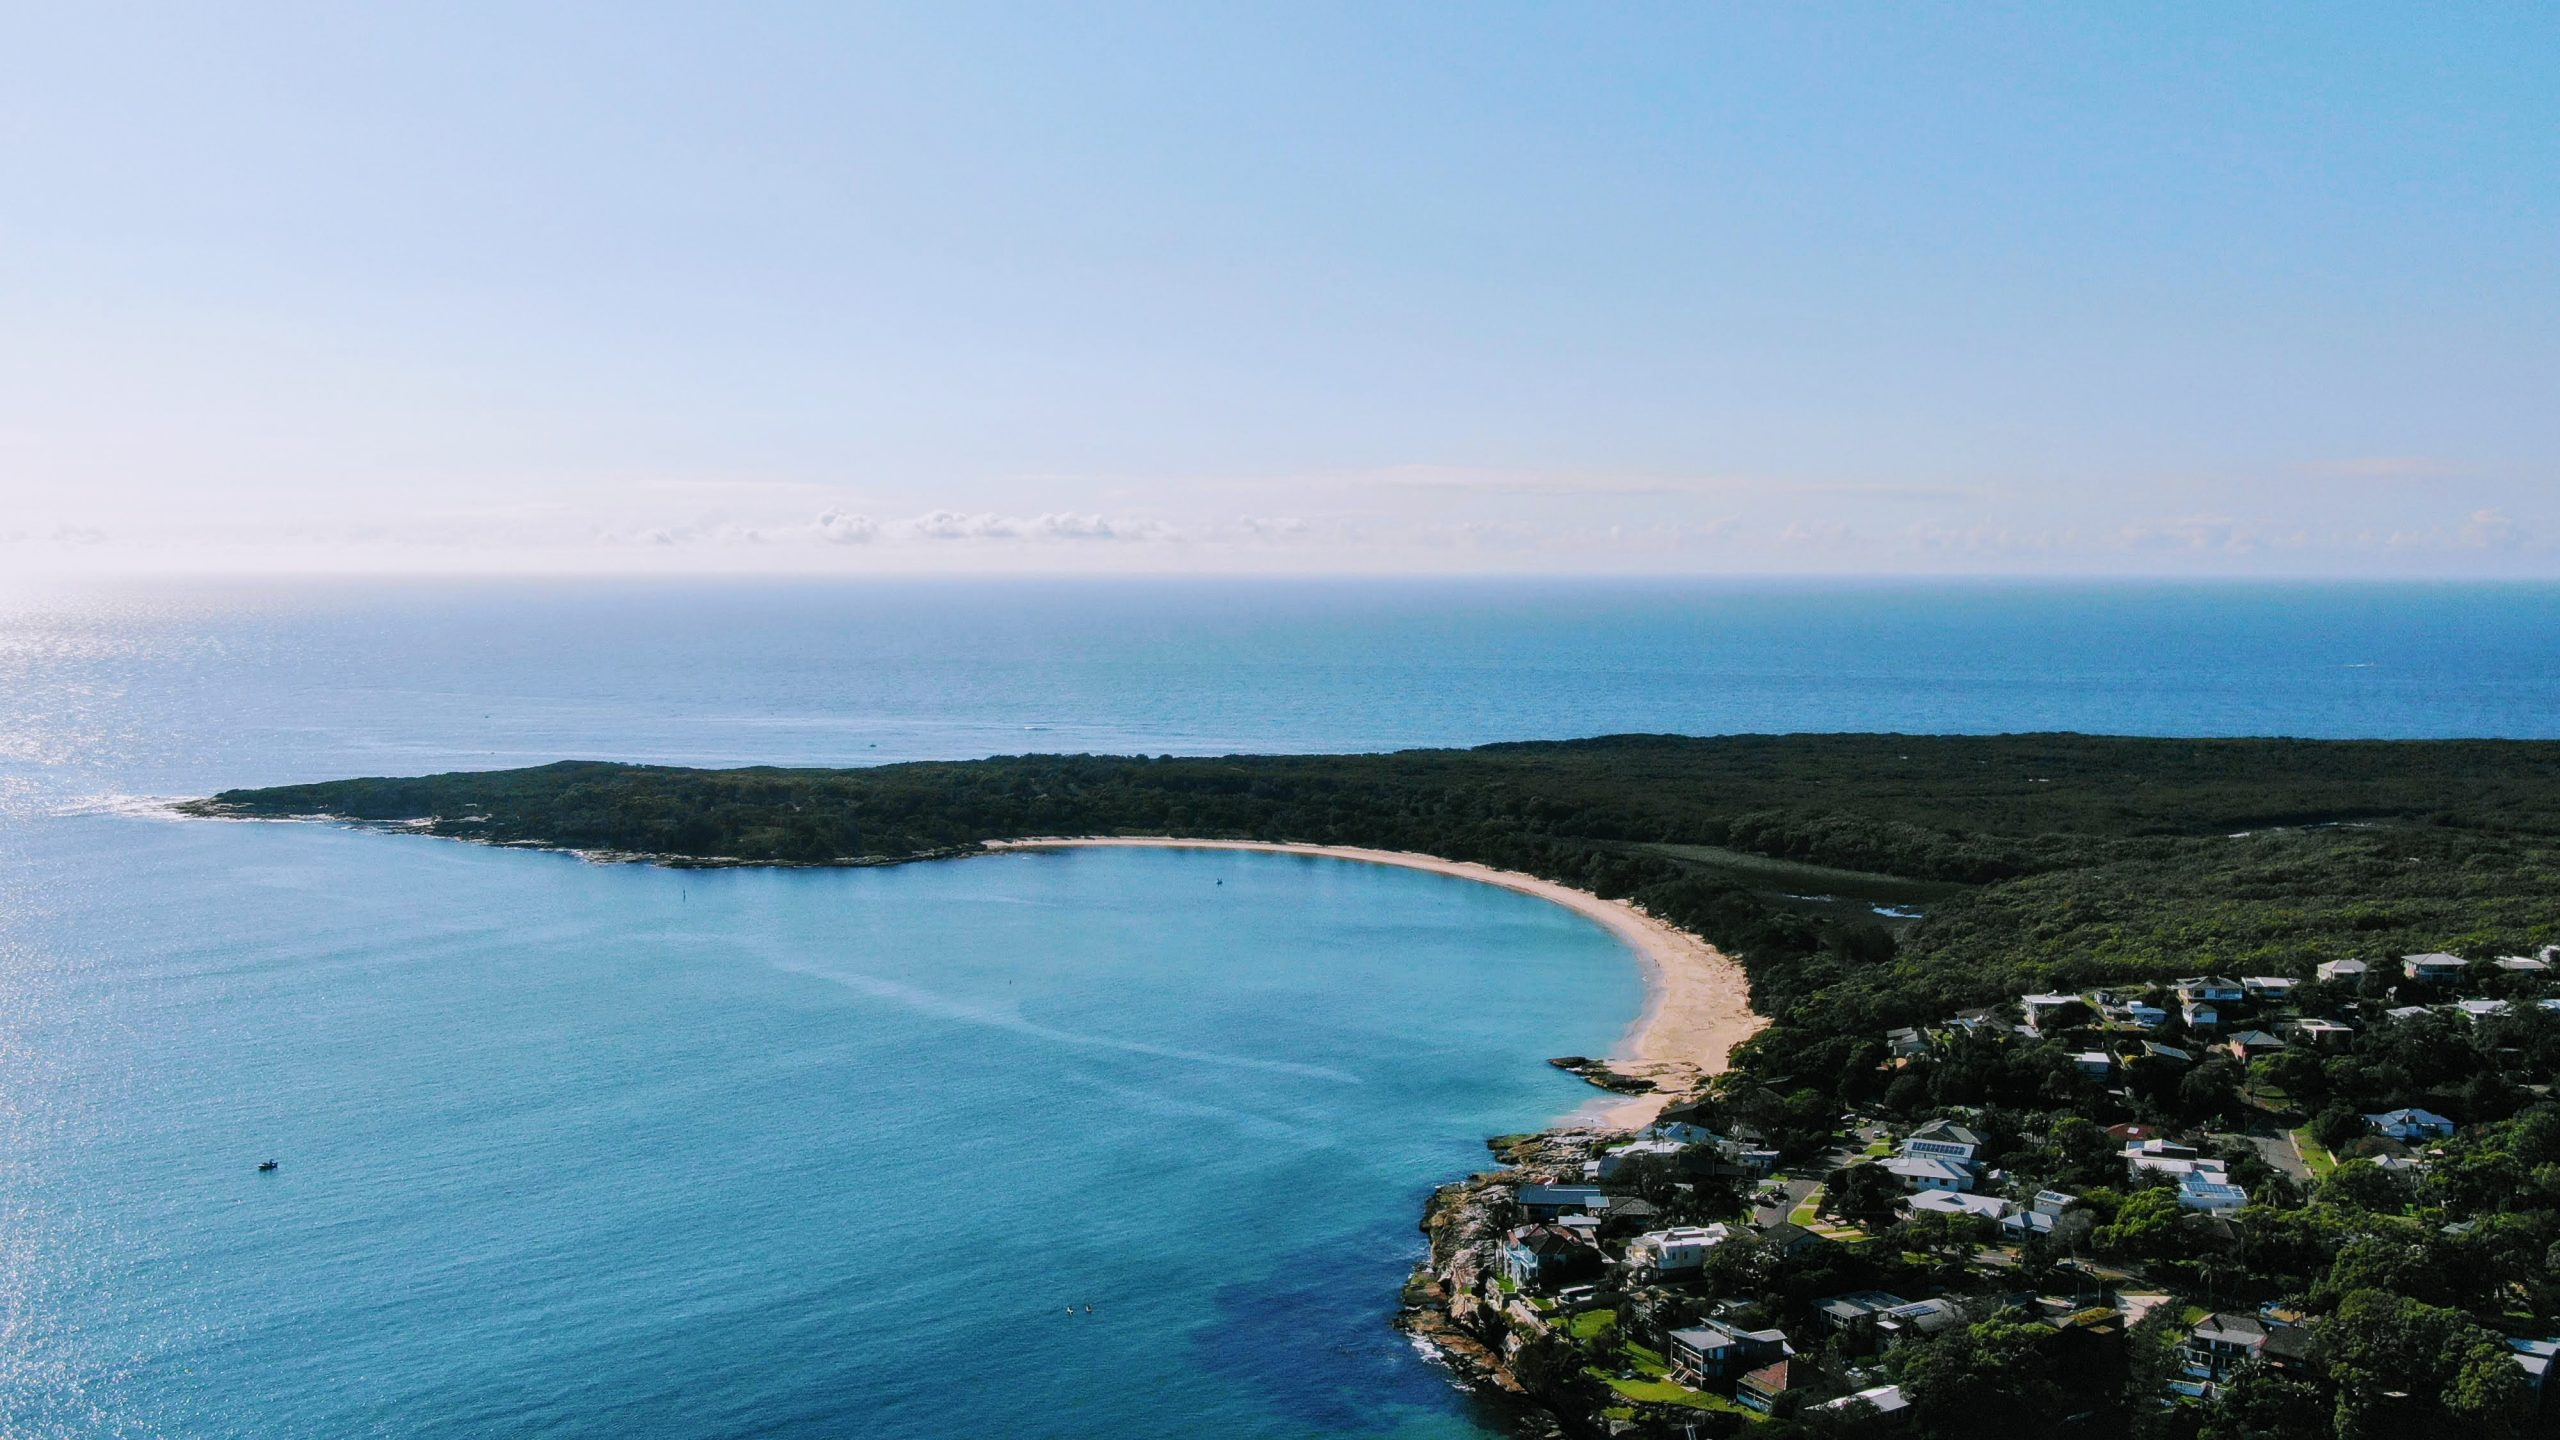 Jibbon Beach from above